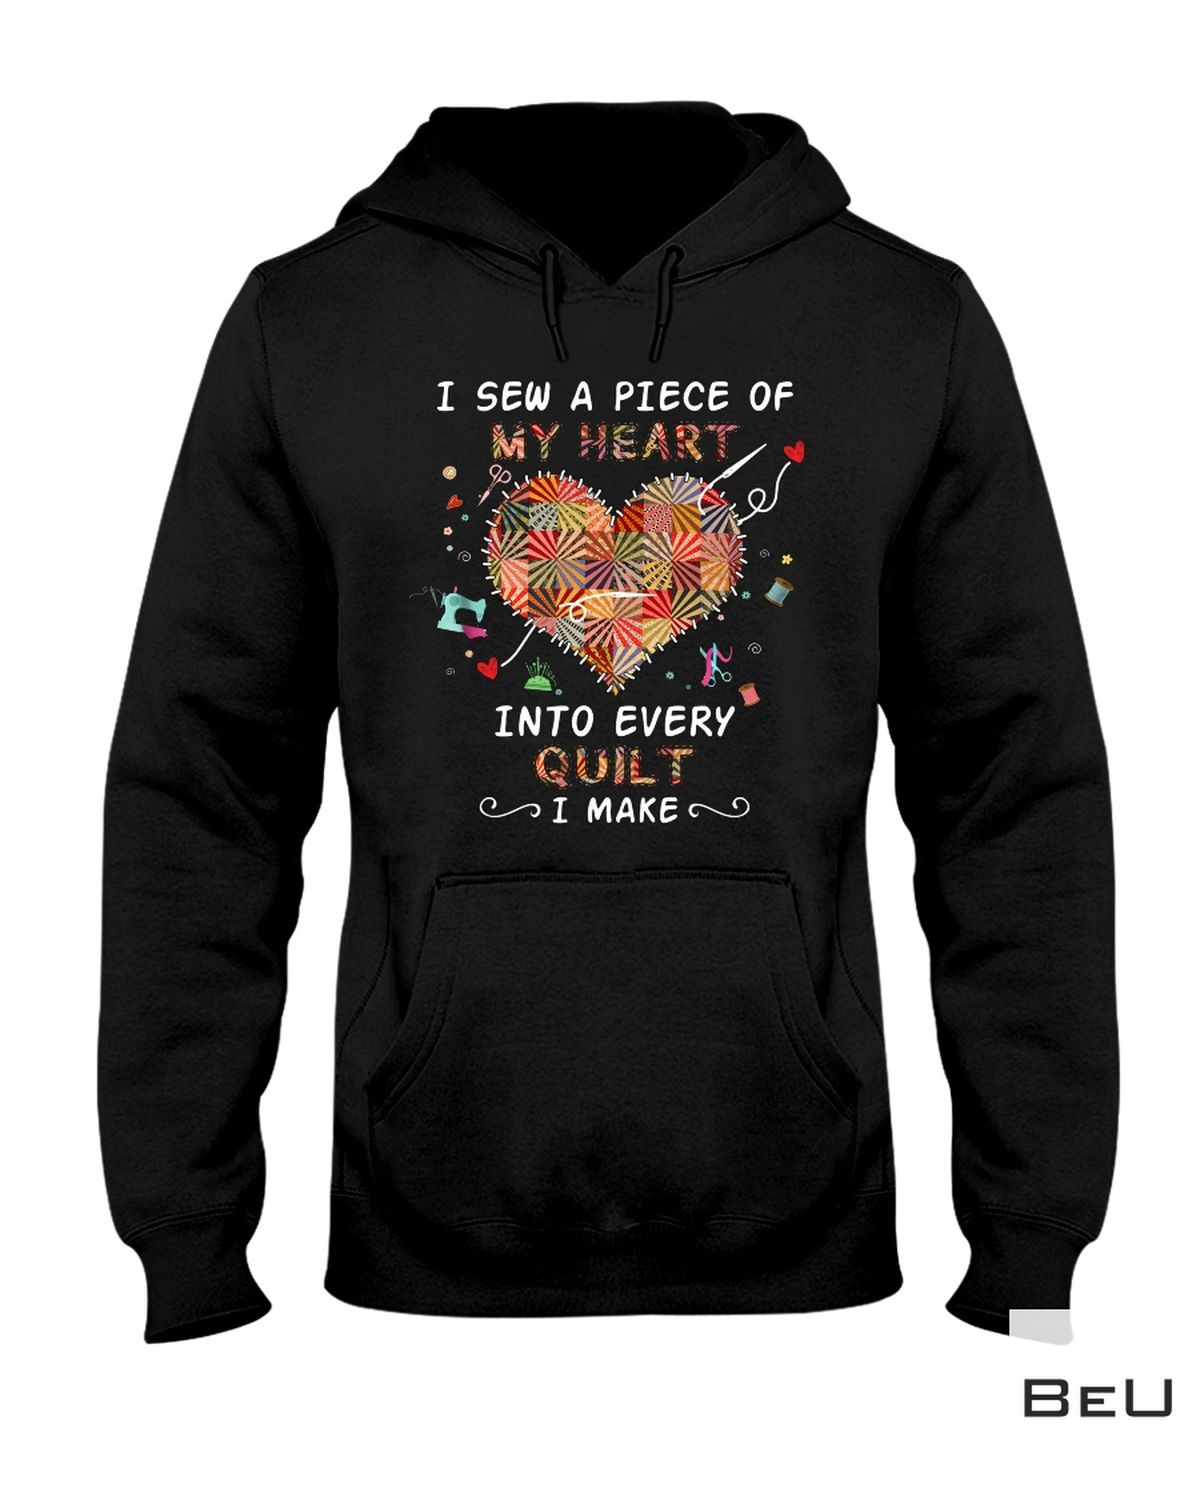 Best I Sew A Piece Of My Heart Into Every Quilt I Make Shirt, hoodie, tank top